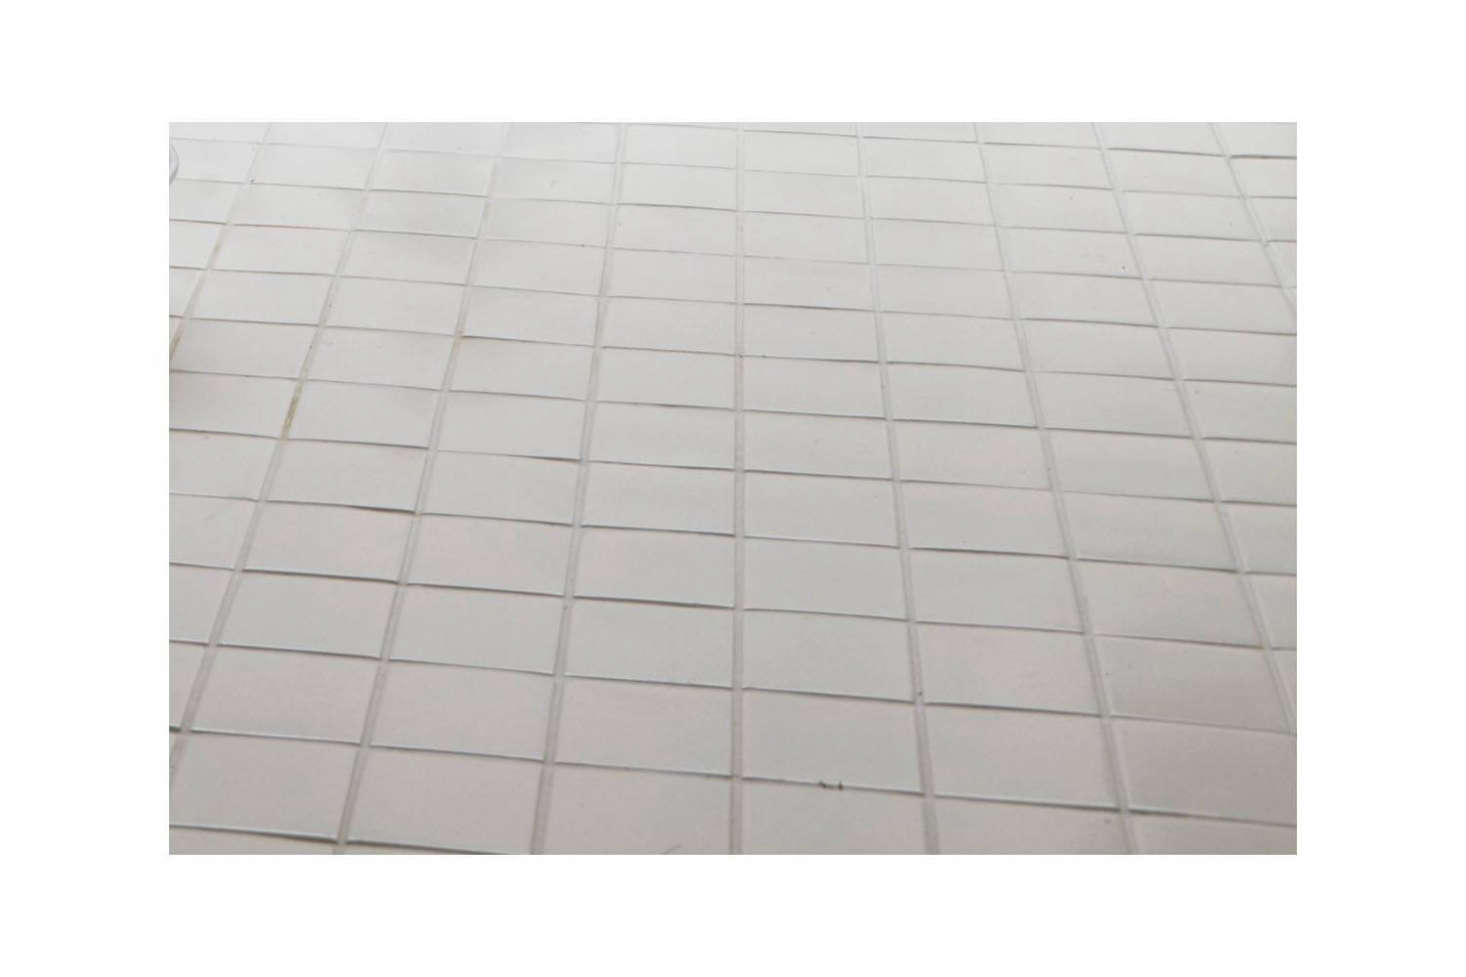 The tile is Earthenware Elements 10-by-10-centimeter (about 4-by-4-inch)Gloss Field Tile in Candle White from Ann Sacks.